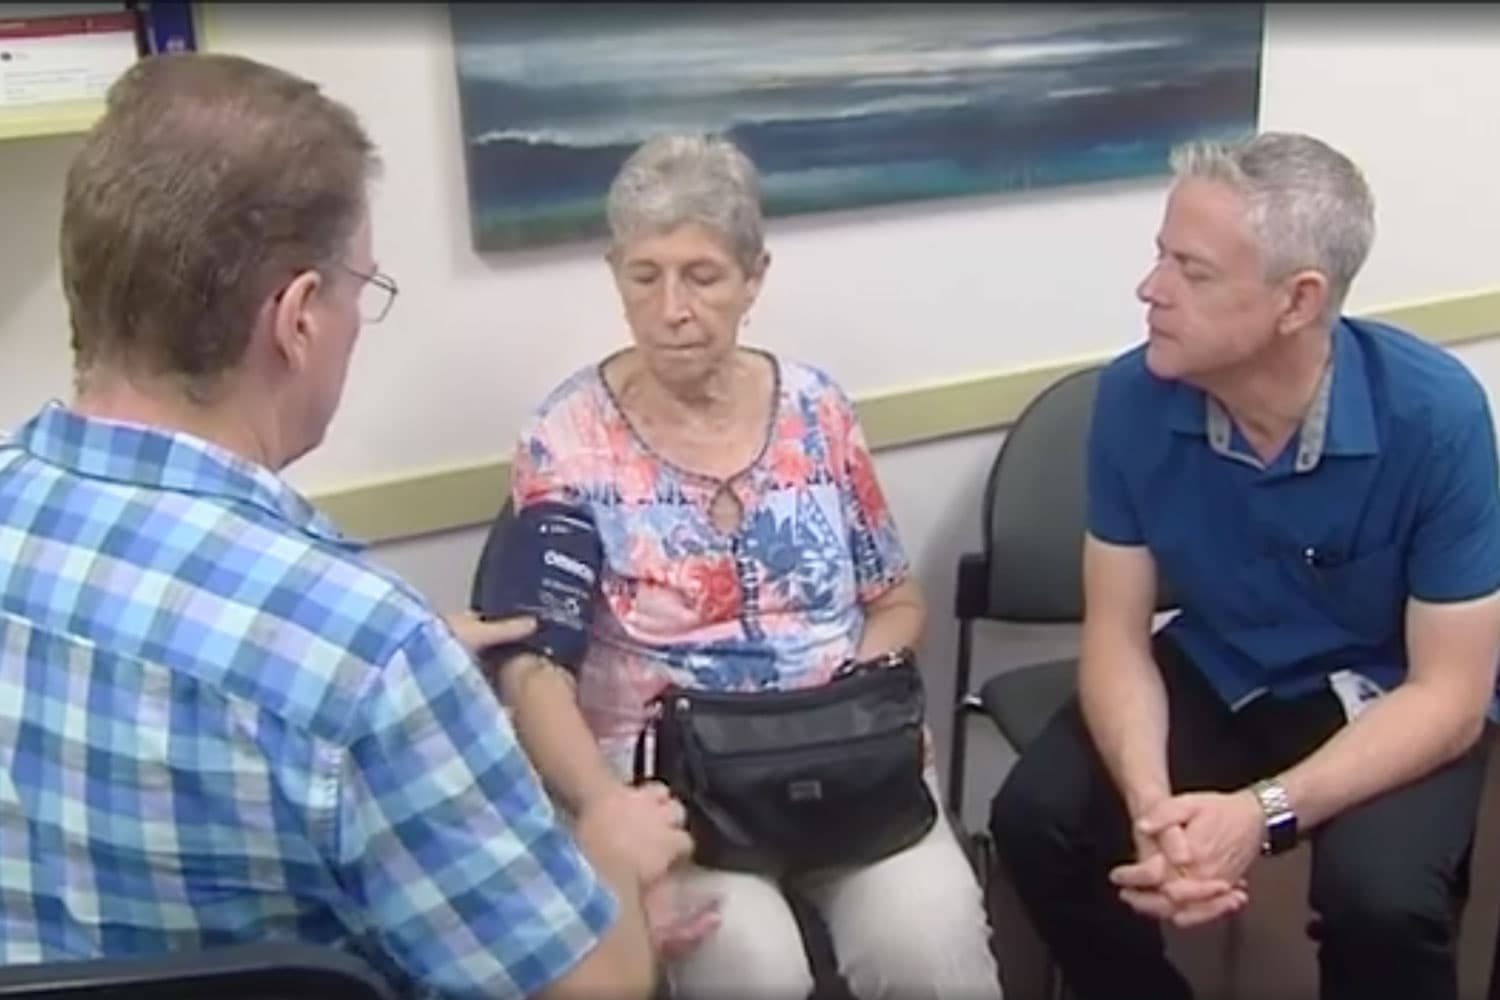 Elderly patients can come to our practice instead of hospital thanks to Open Arch program